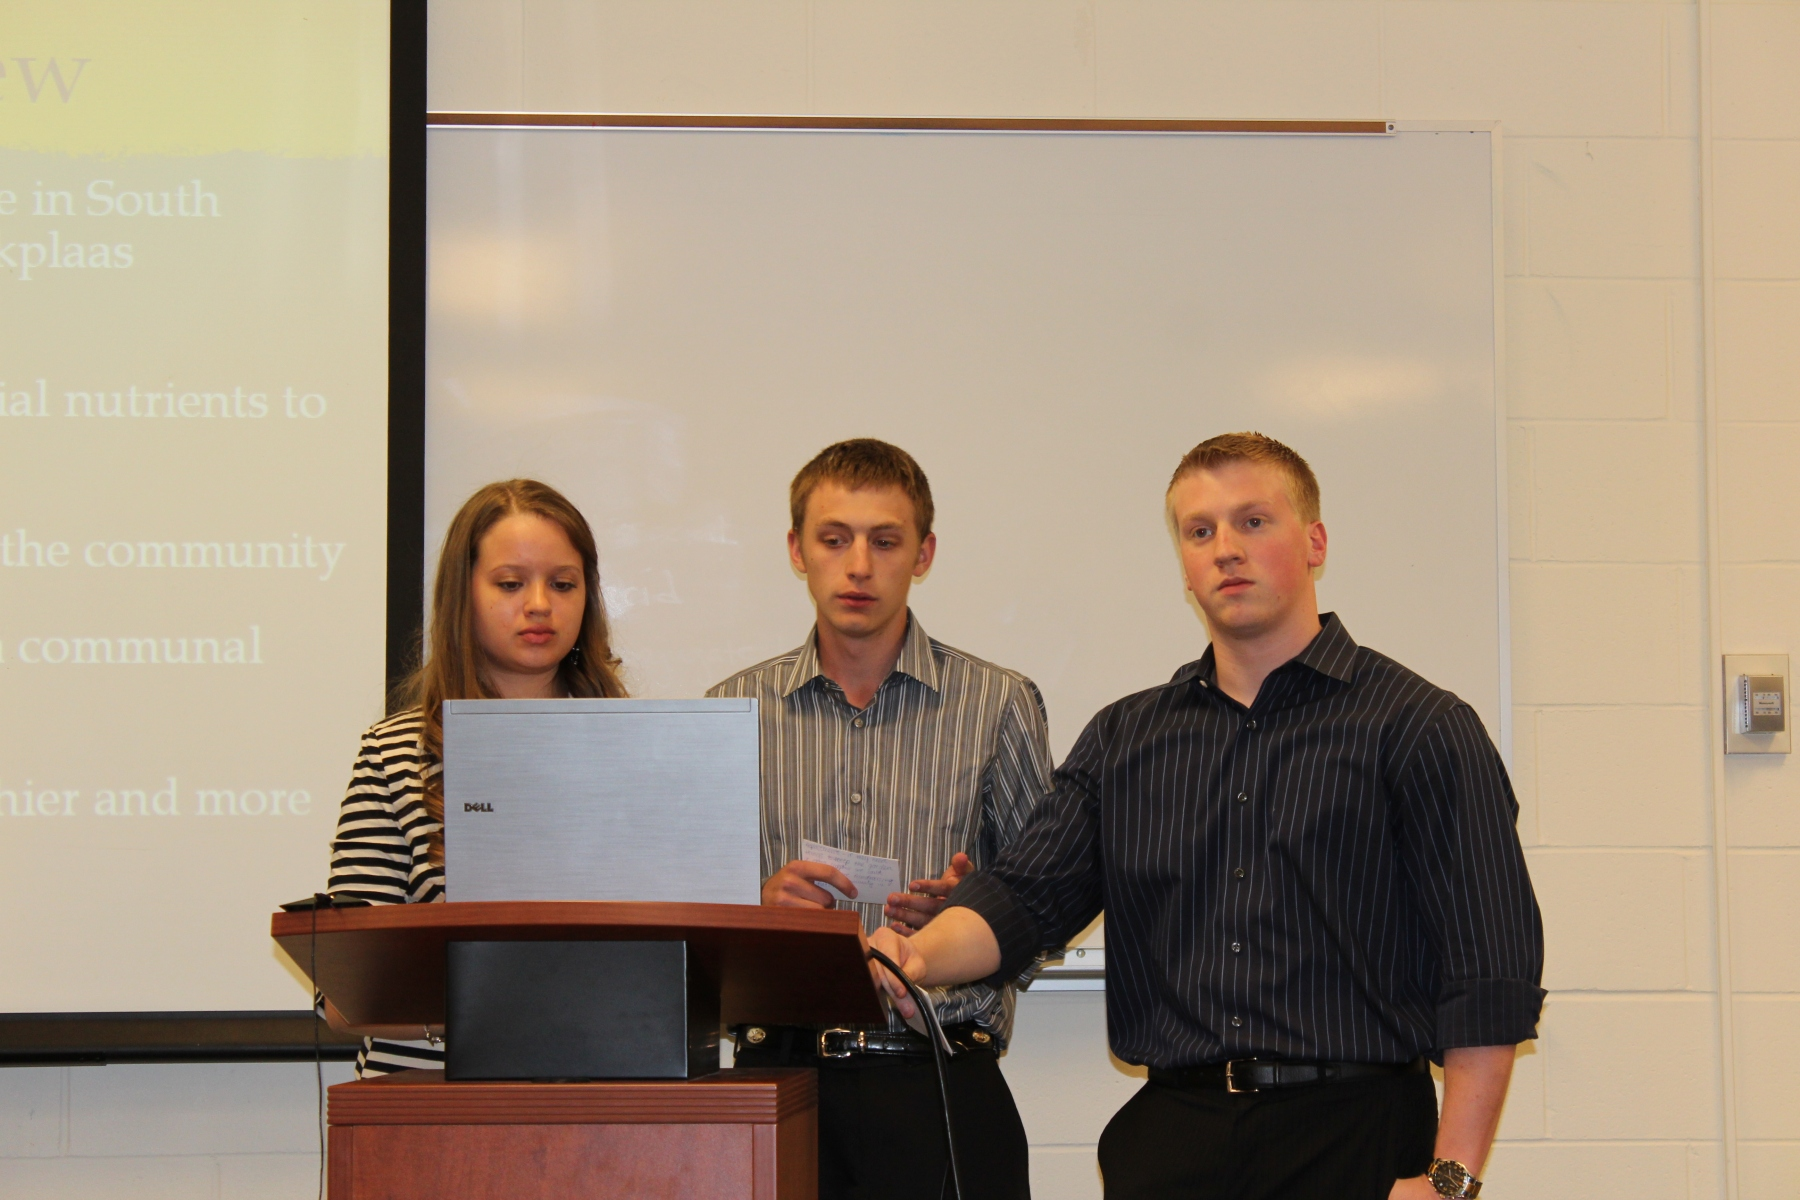 Chrystal, Vinny, and Evan share their vegetable garden service project.